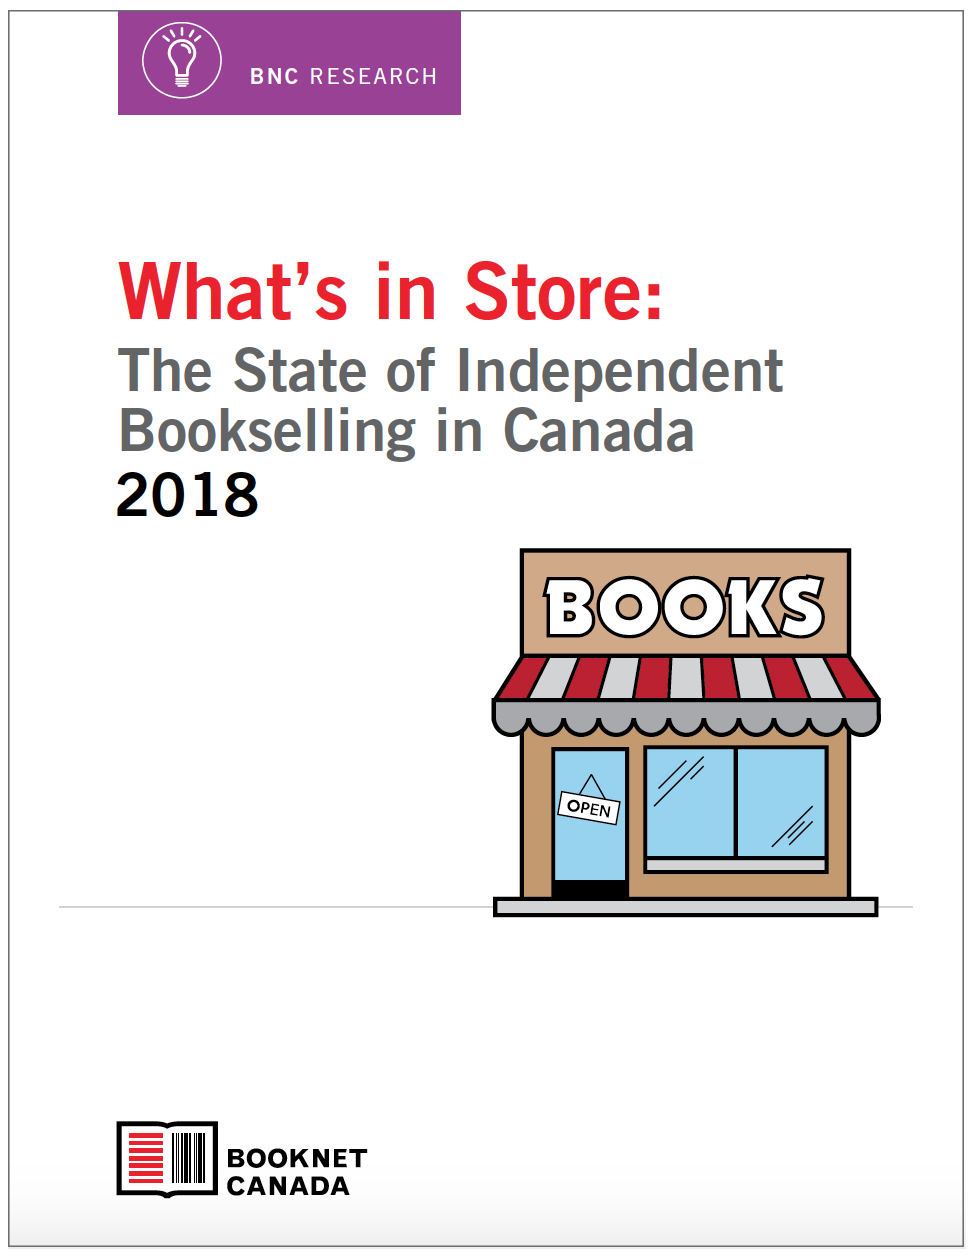 research-cover-stateofbookselling2018.png